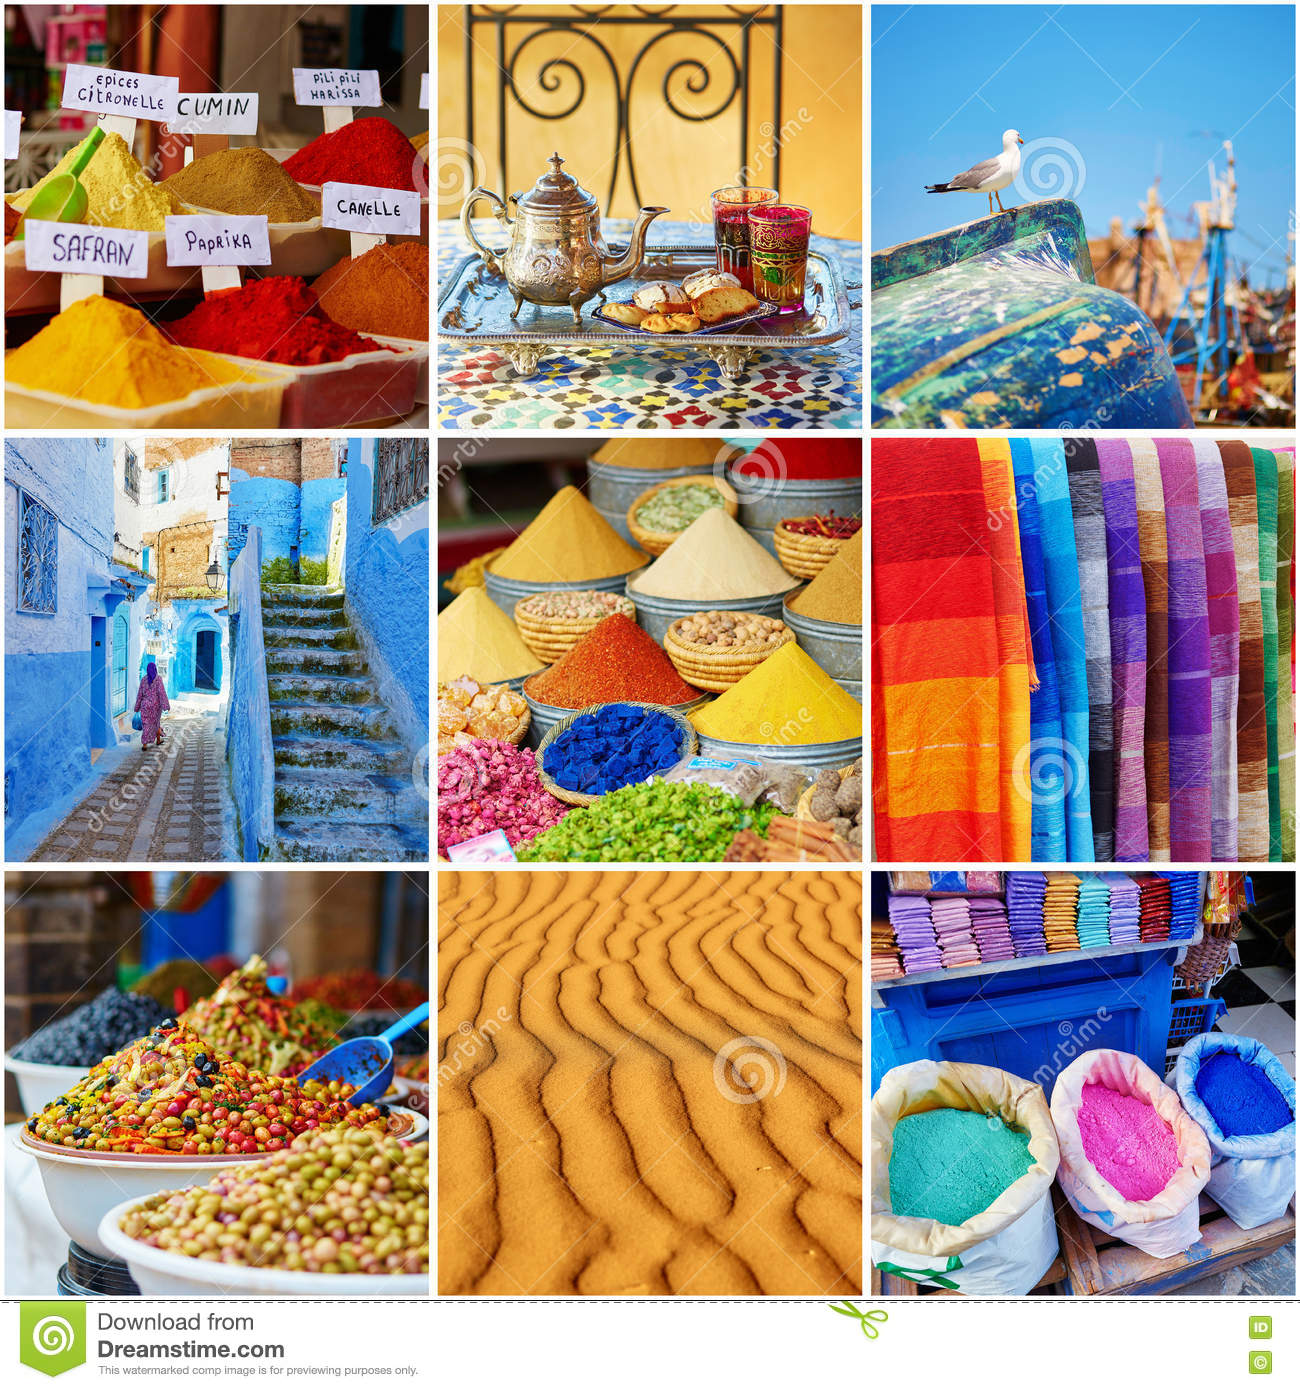 Download Collage With Colorful Moroccan Photos Stock Photo - Image of africa, cooking: 74832278